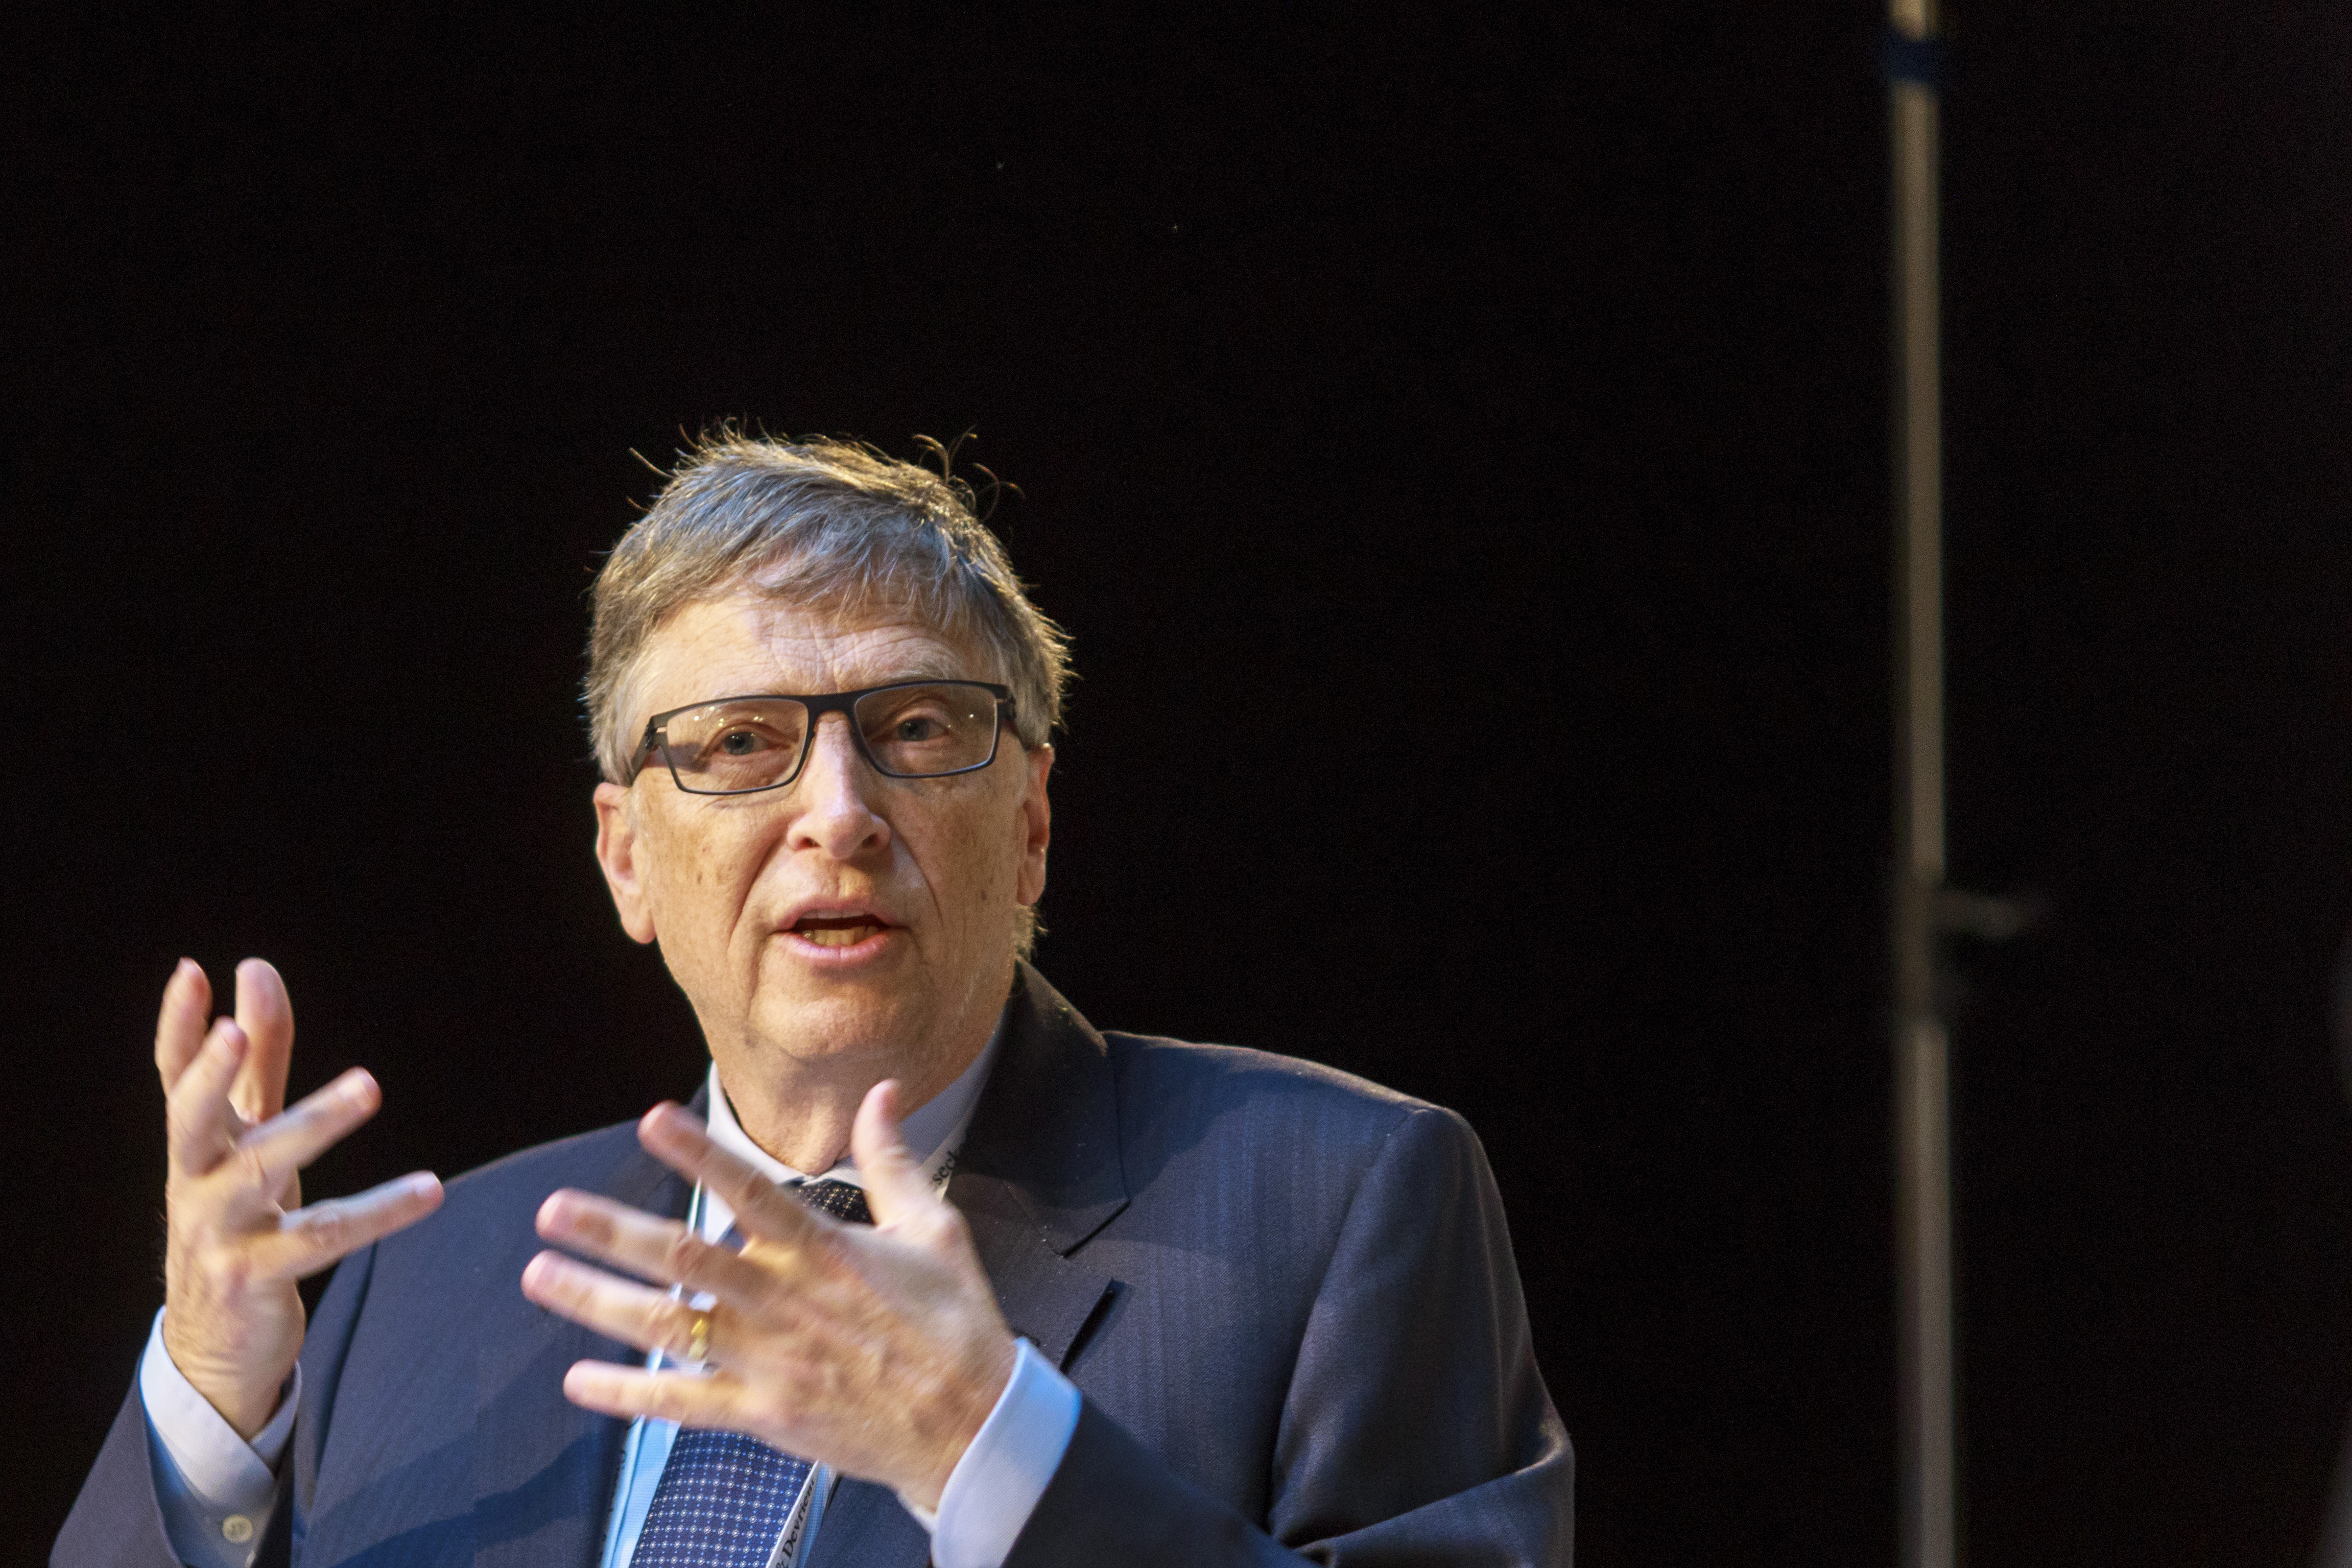 Bill Gates at Munich Security Conference on February 17, 2017 in Munich, Germany.